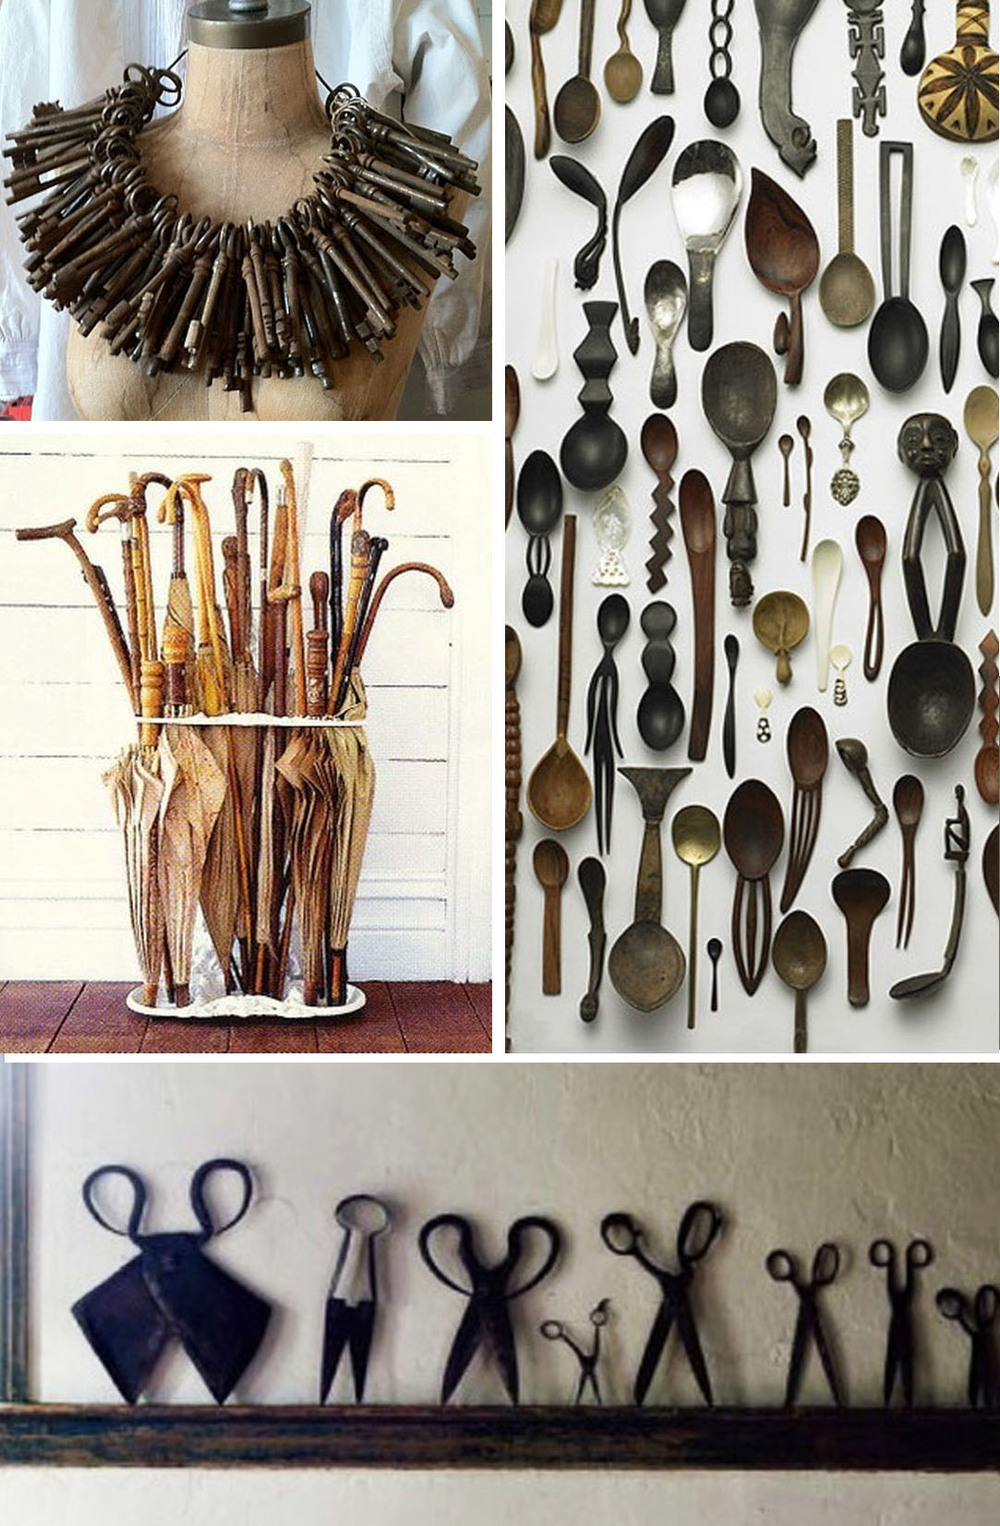 Collection of all sorts of antiques: Skelton keys, umbrellas, spoons and scissors.